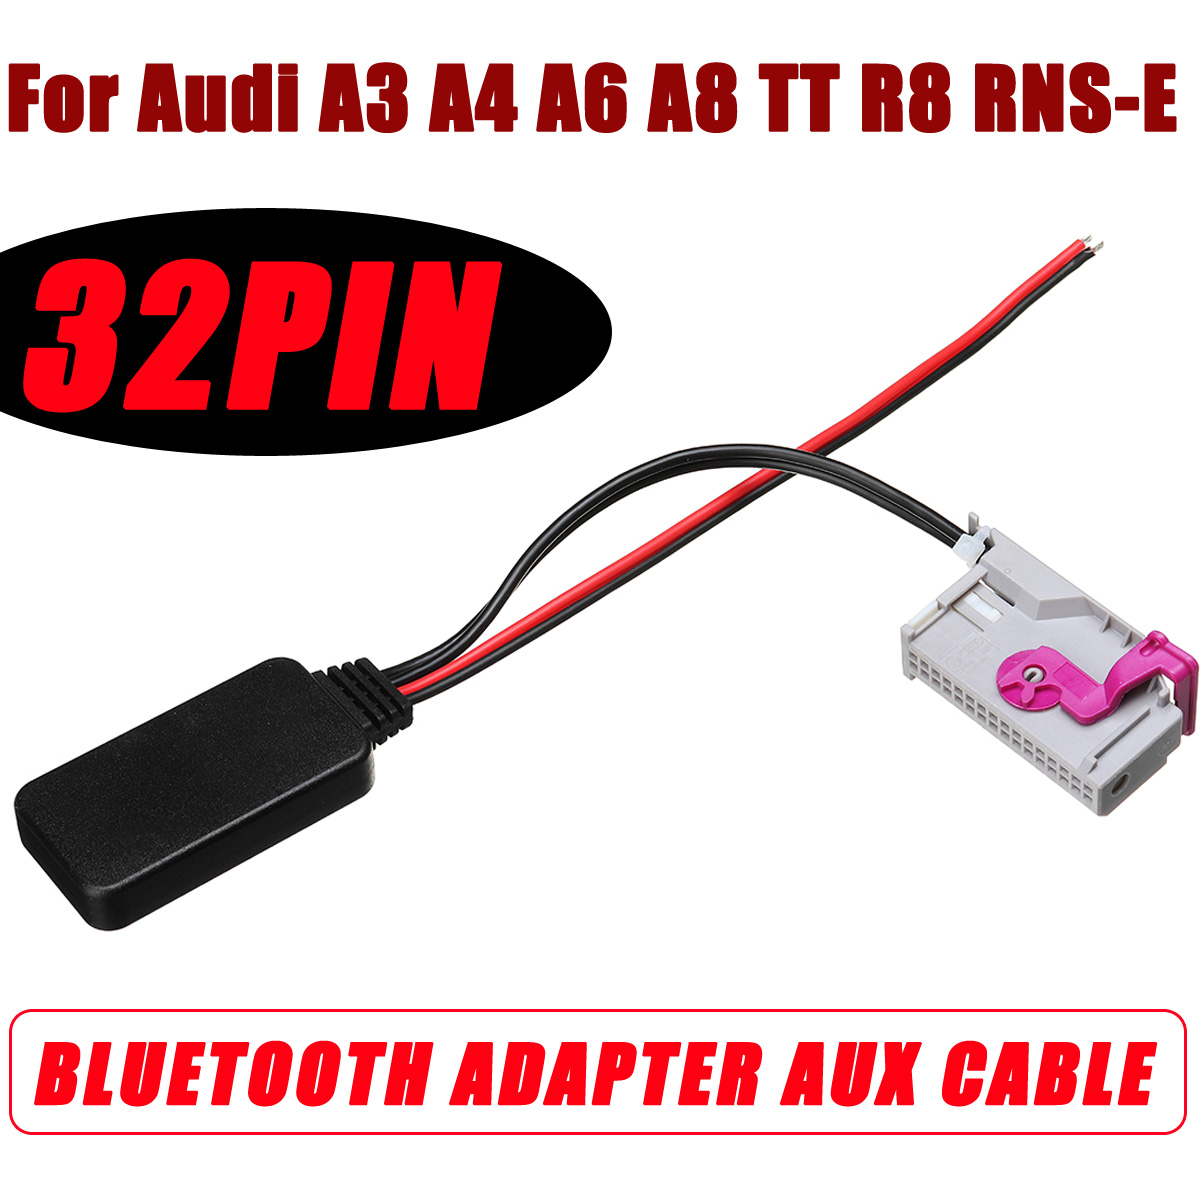 Wireless Bluetooth Adapter Cable For Audi And Volkswagen: For Audi A3 A4 A6 A8 TT R8 RNS E 32Pin Wireless Bluetooth